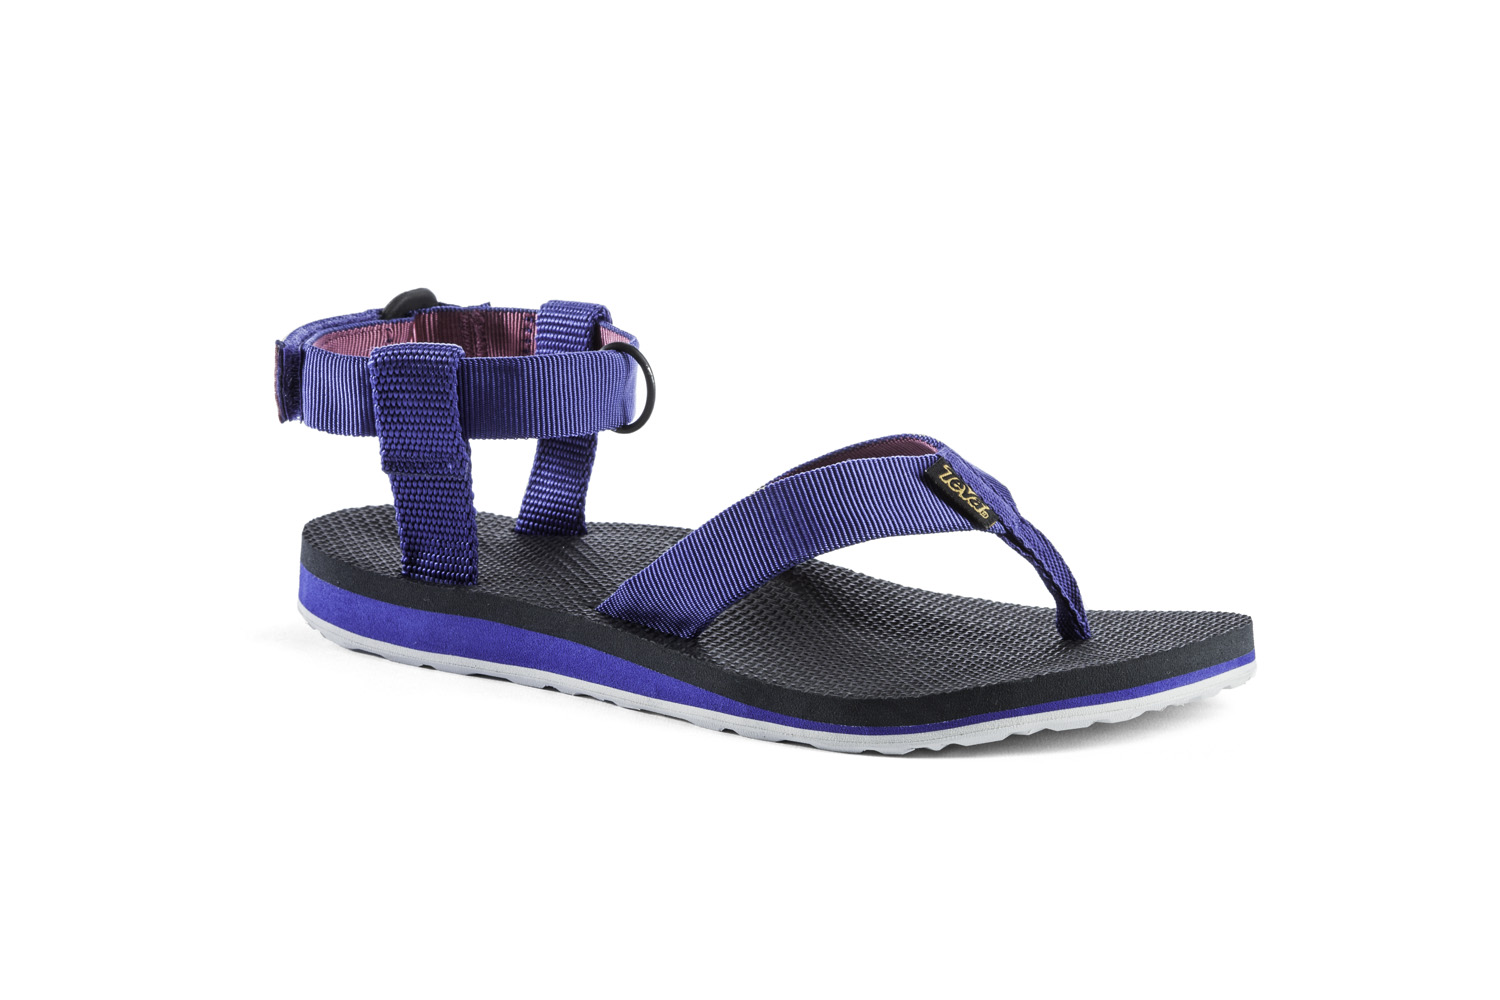 Teva Original Sandals in Deep Purple, £30 (available at Teva)